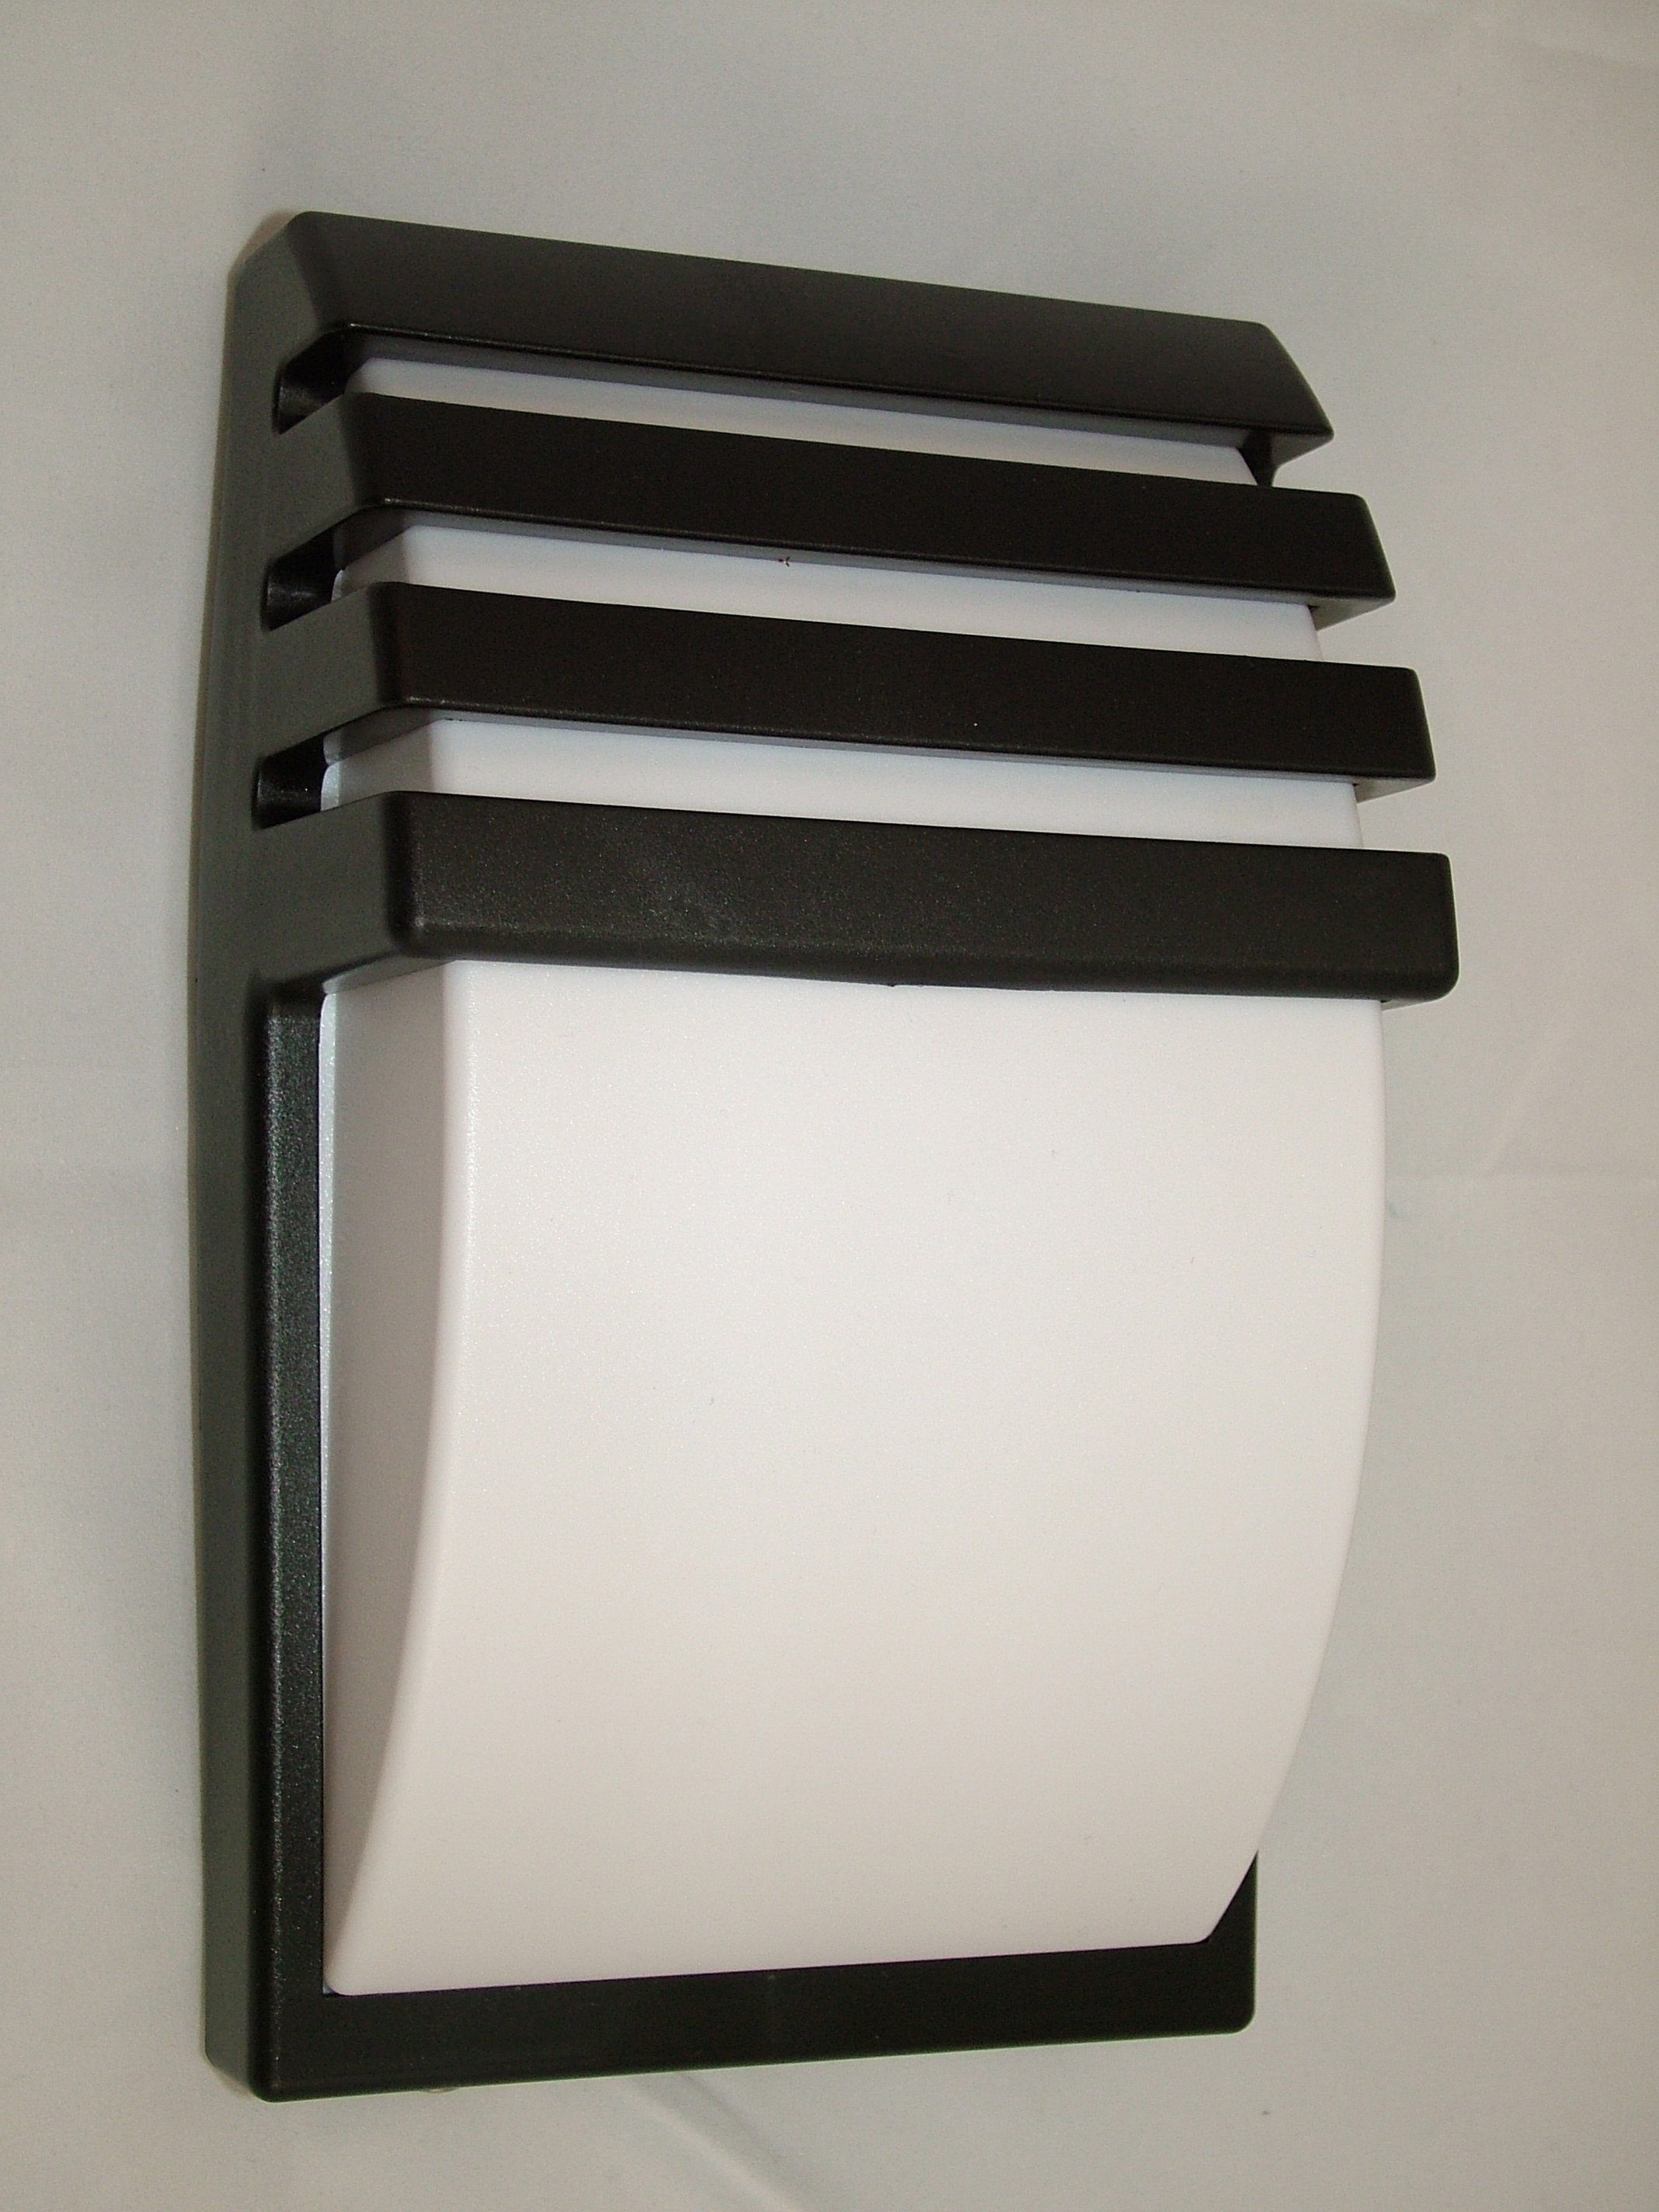 Large Outdoor Modern Wall Mounted Lighting Fixtures With Black Intended For Contemporary Outdoor Wall Lights (#7 of 15)